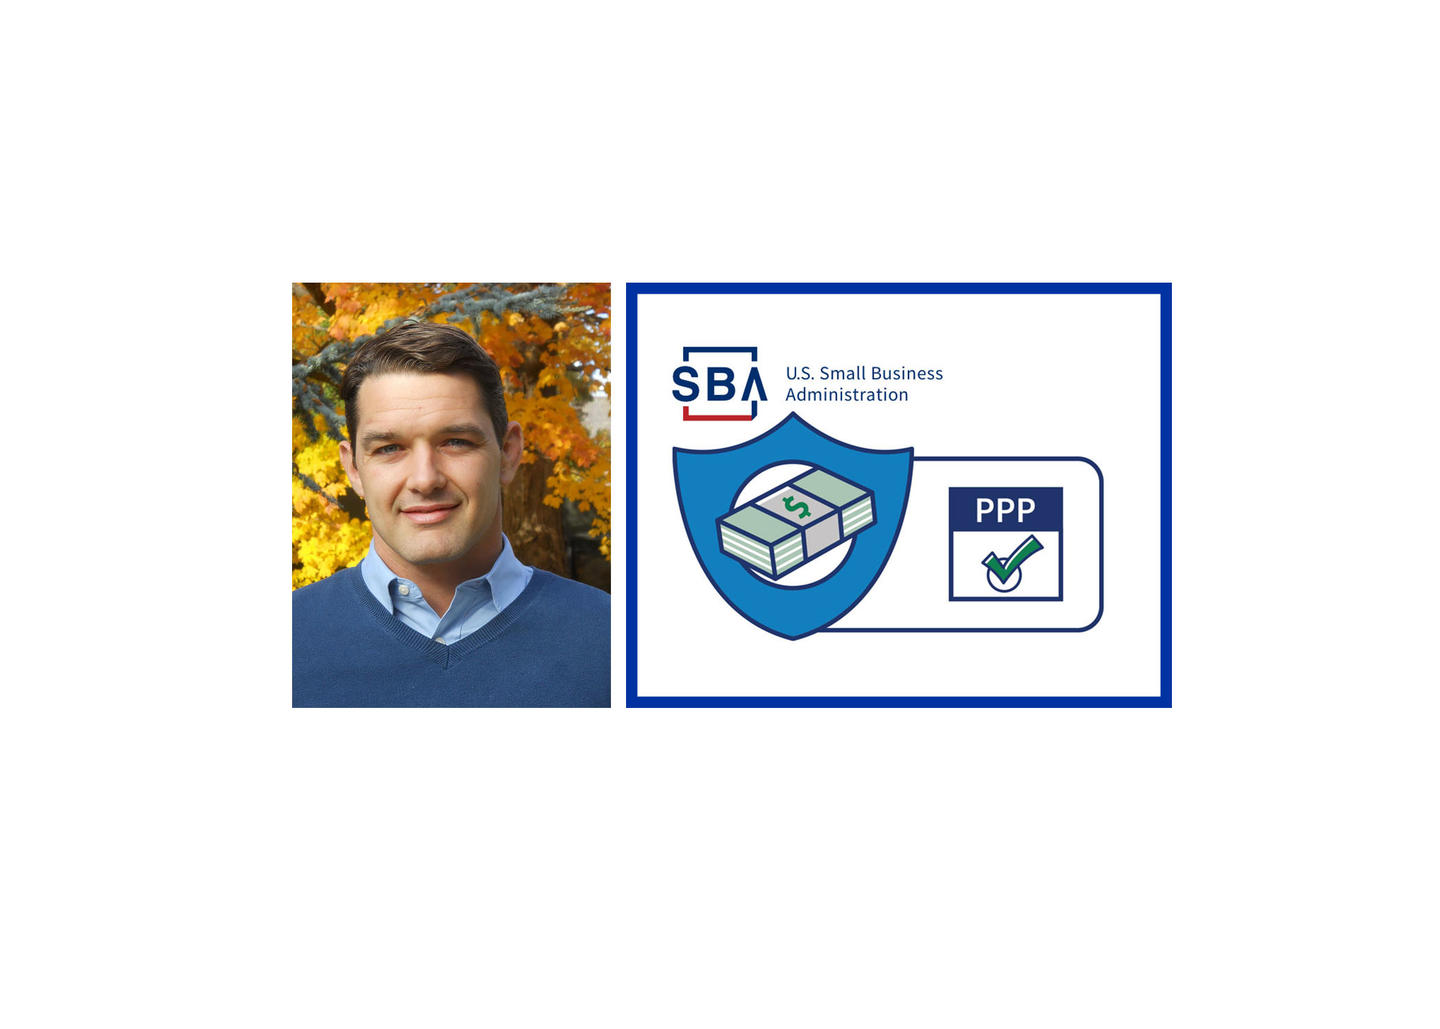 Headshot of Christoper Neilson with SBA and Payroll Protection Program logos